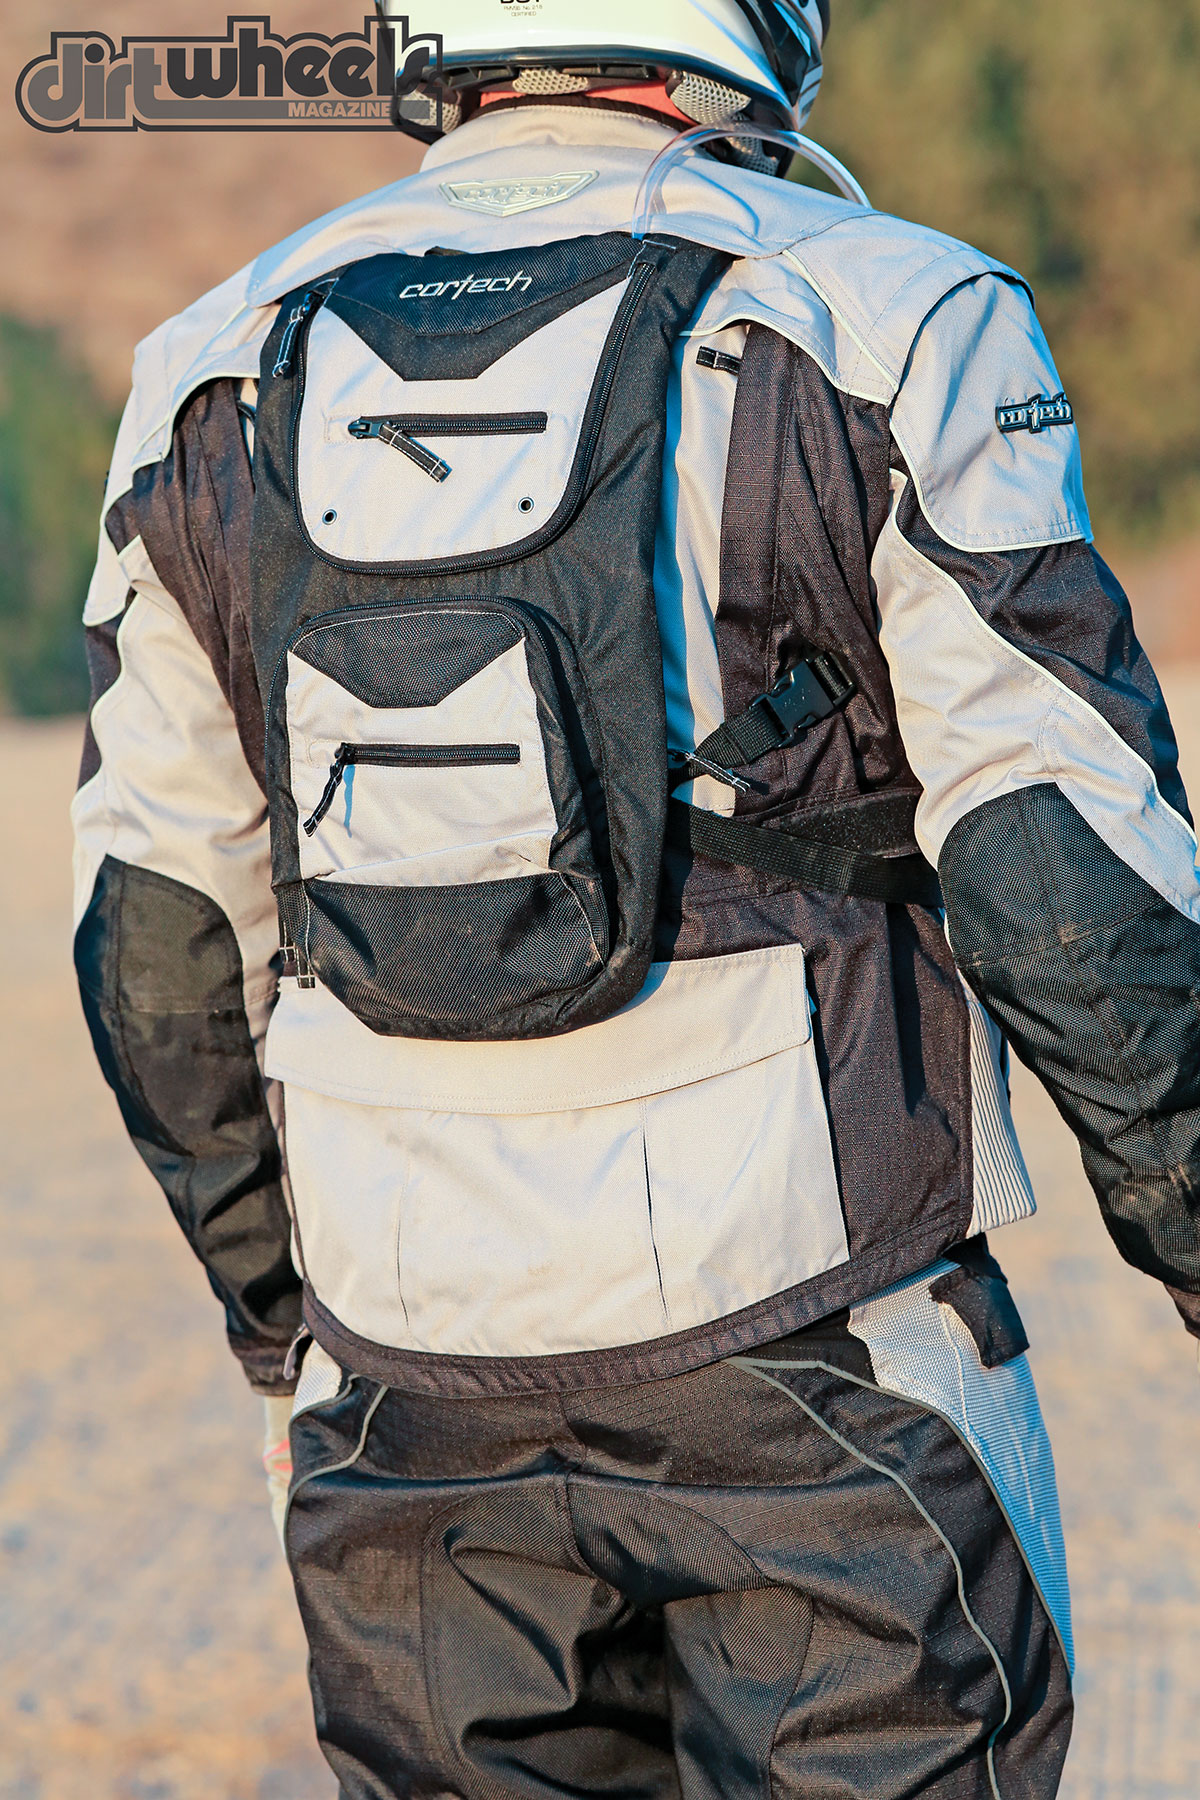 Cortech hit a home run with the integrated hydration pack. The jacket has the option to slide the hydration pack's shoulder straps through the jacket for an awesome fit. It has enough pockets to carry crucial tools or gear as well.